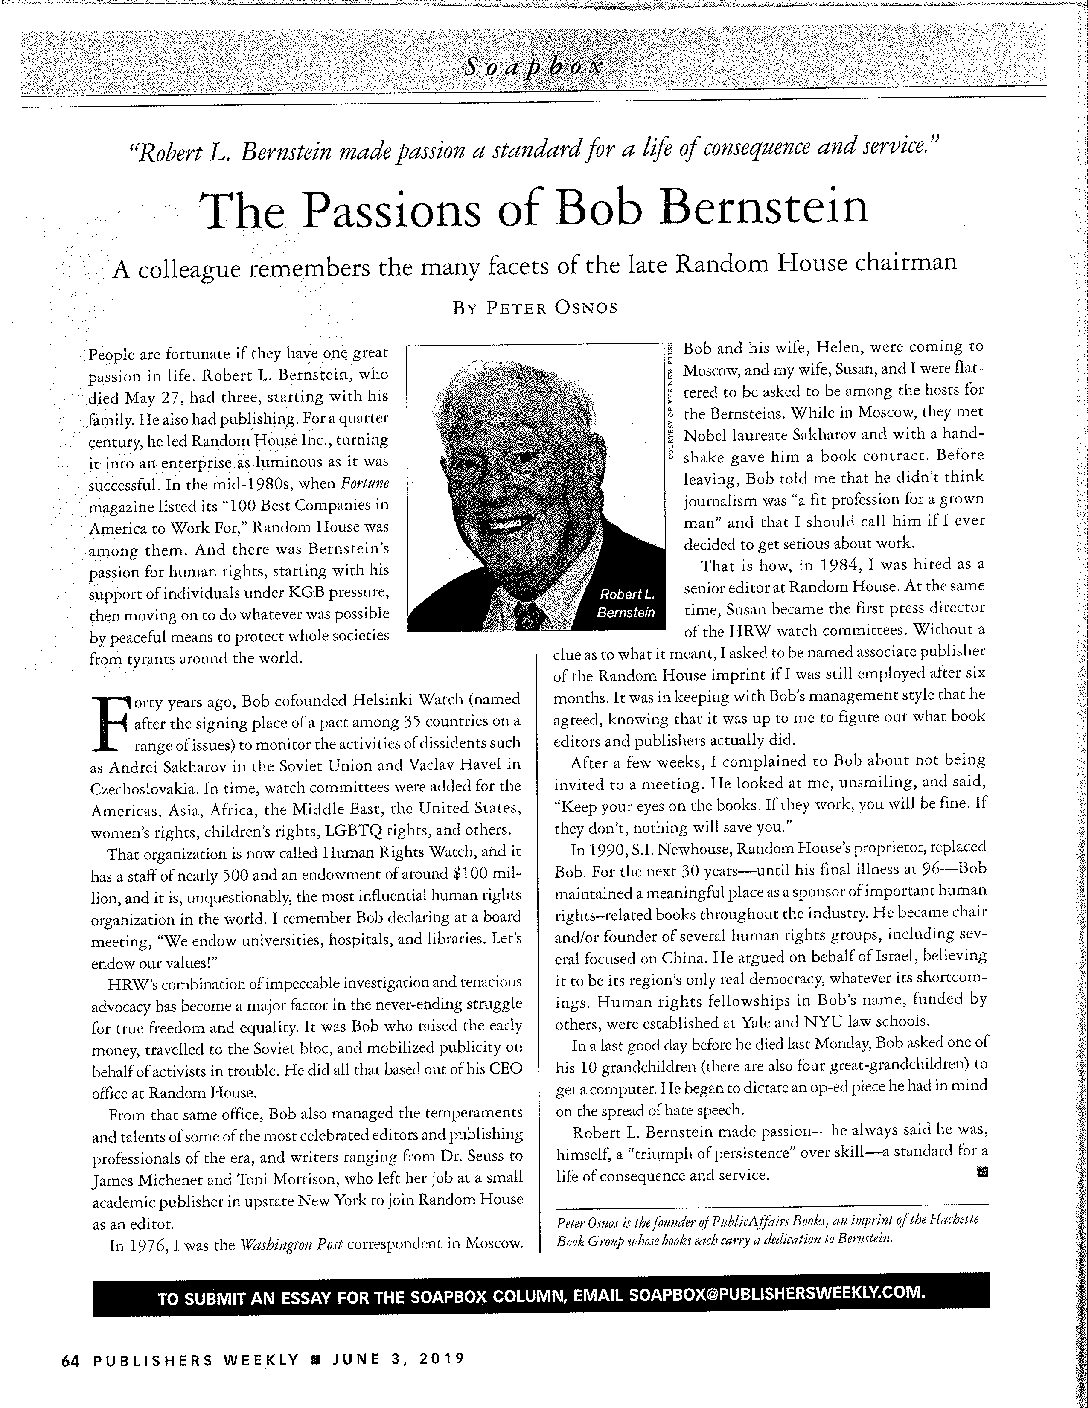 RLB in Publishers Weekly